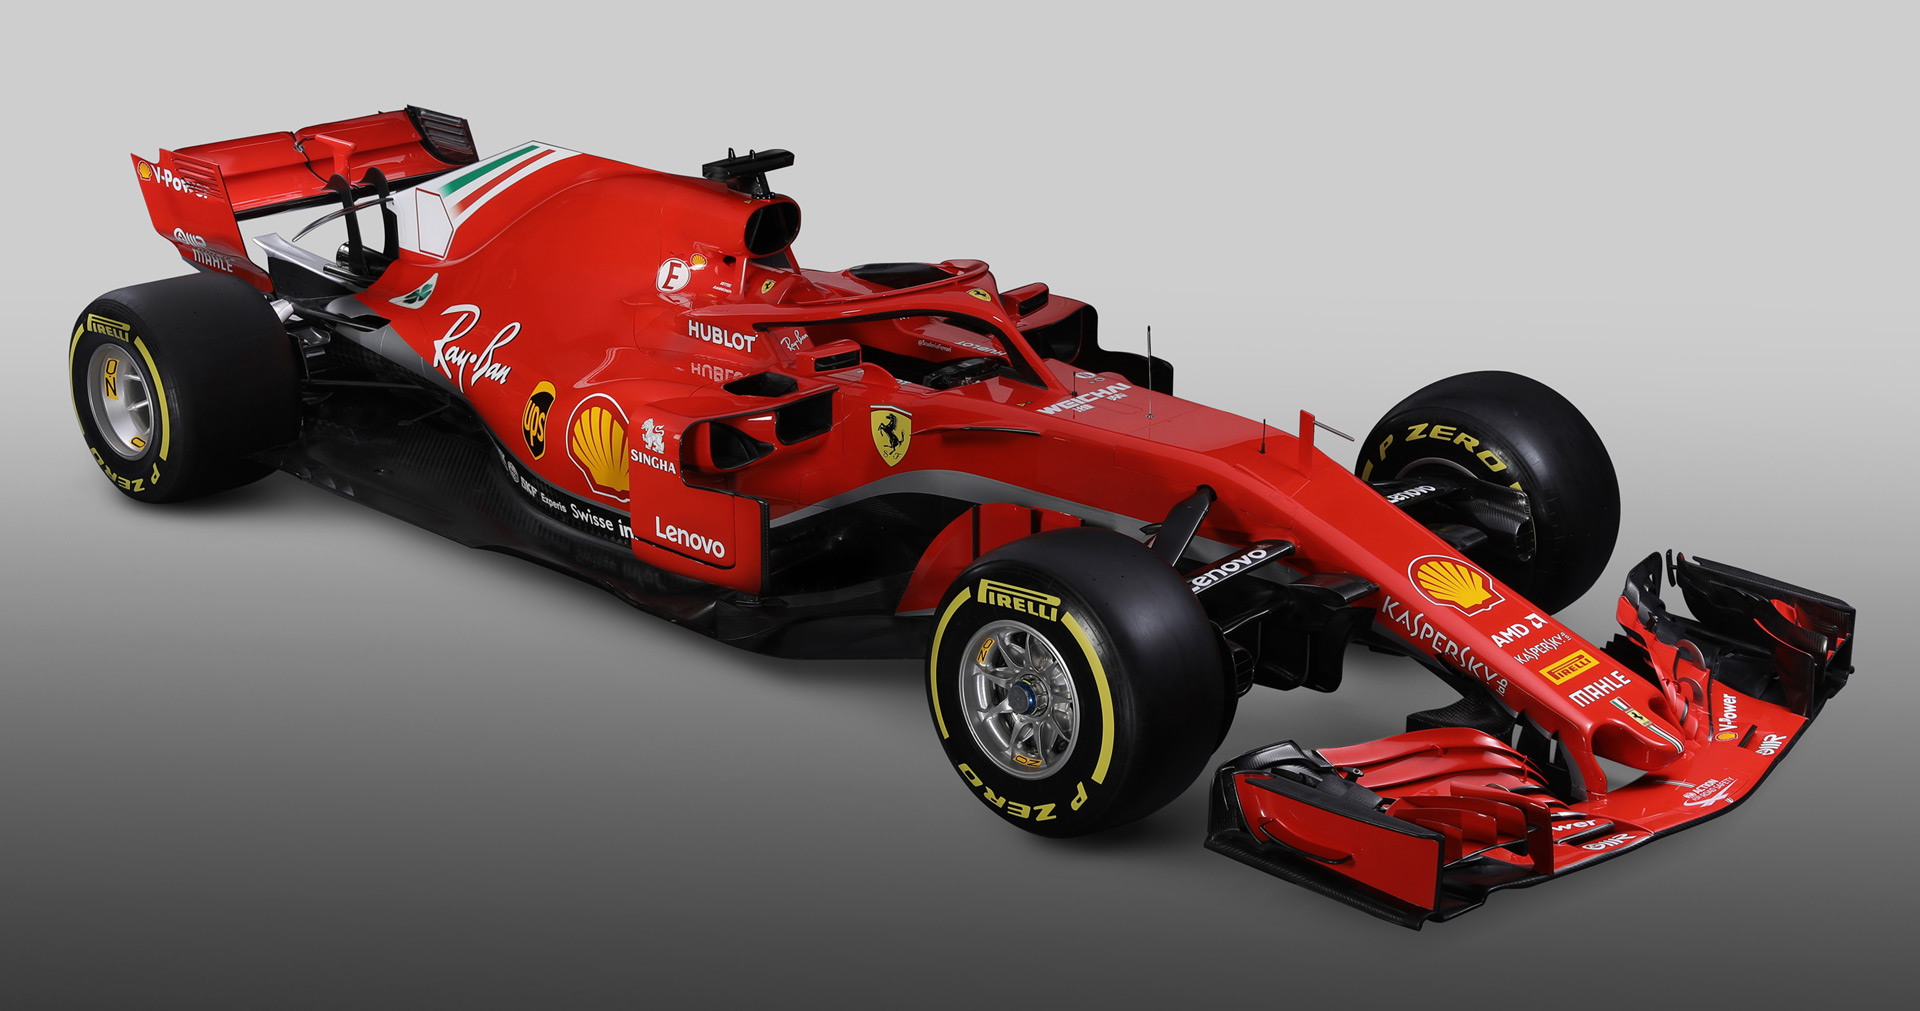 Ferrari reveals SF71H 2018 Formula 1 car